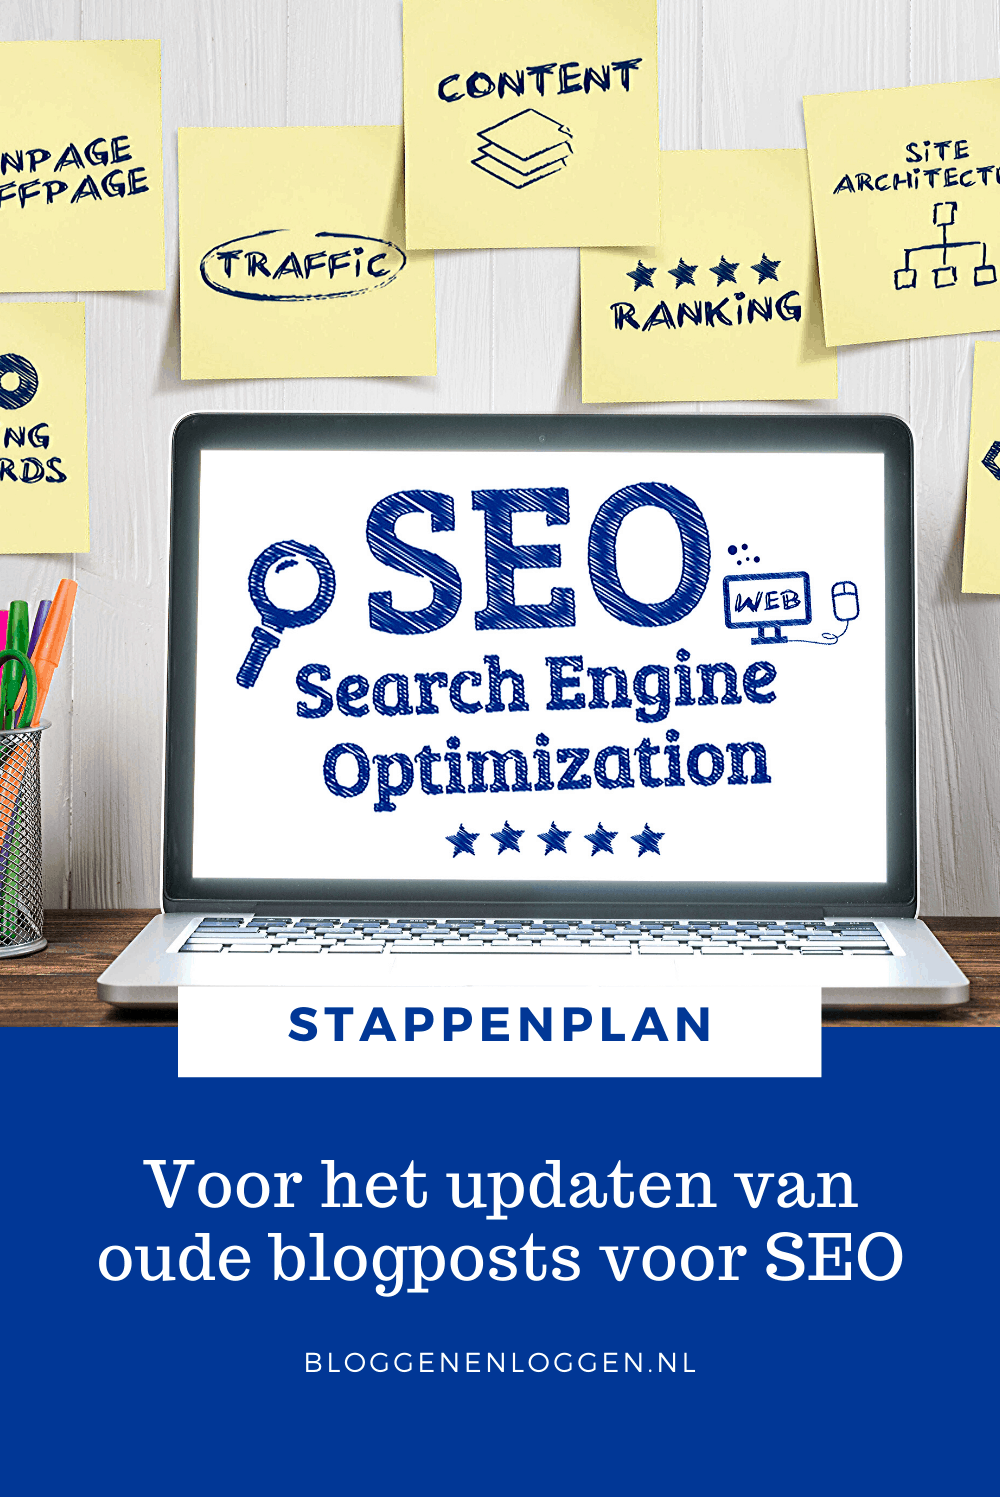 oude blogposts seo optimaliseren